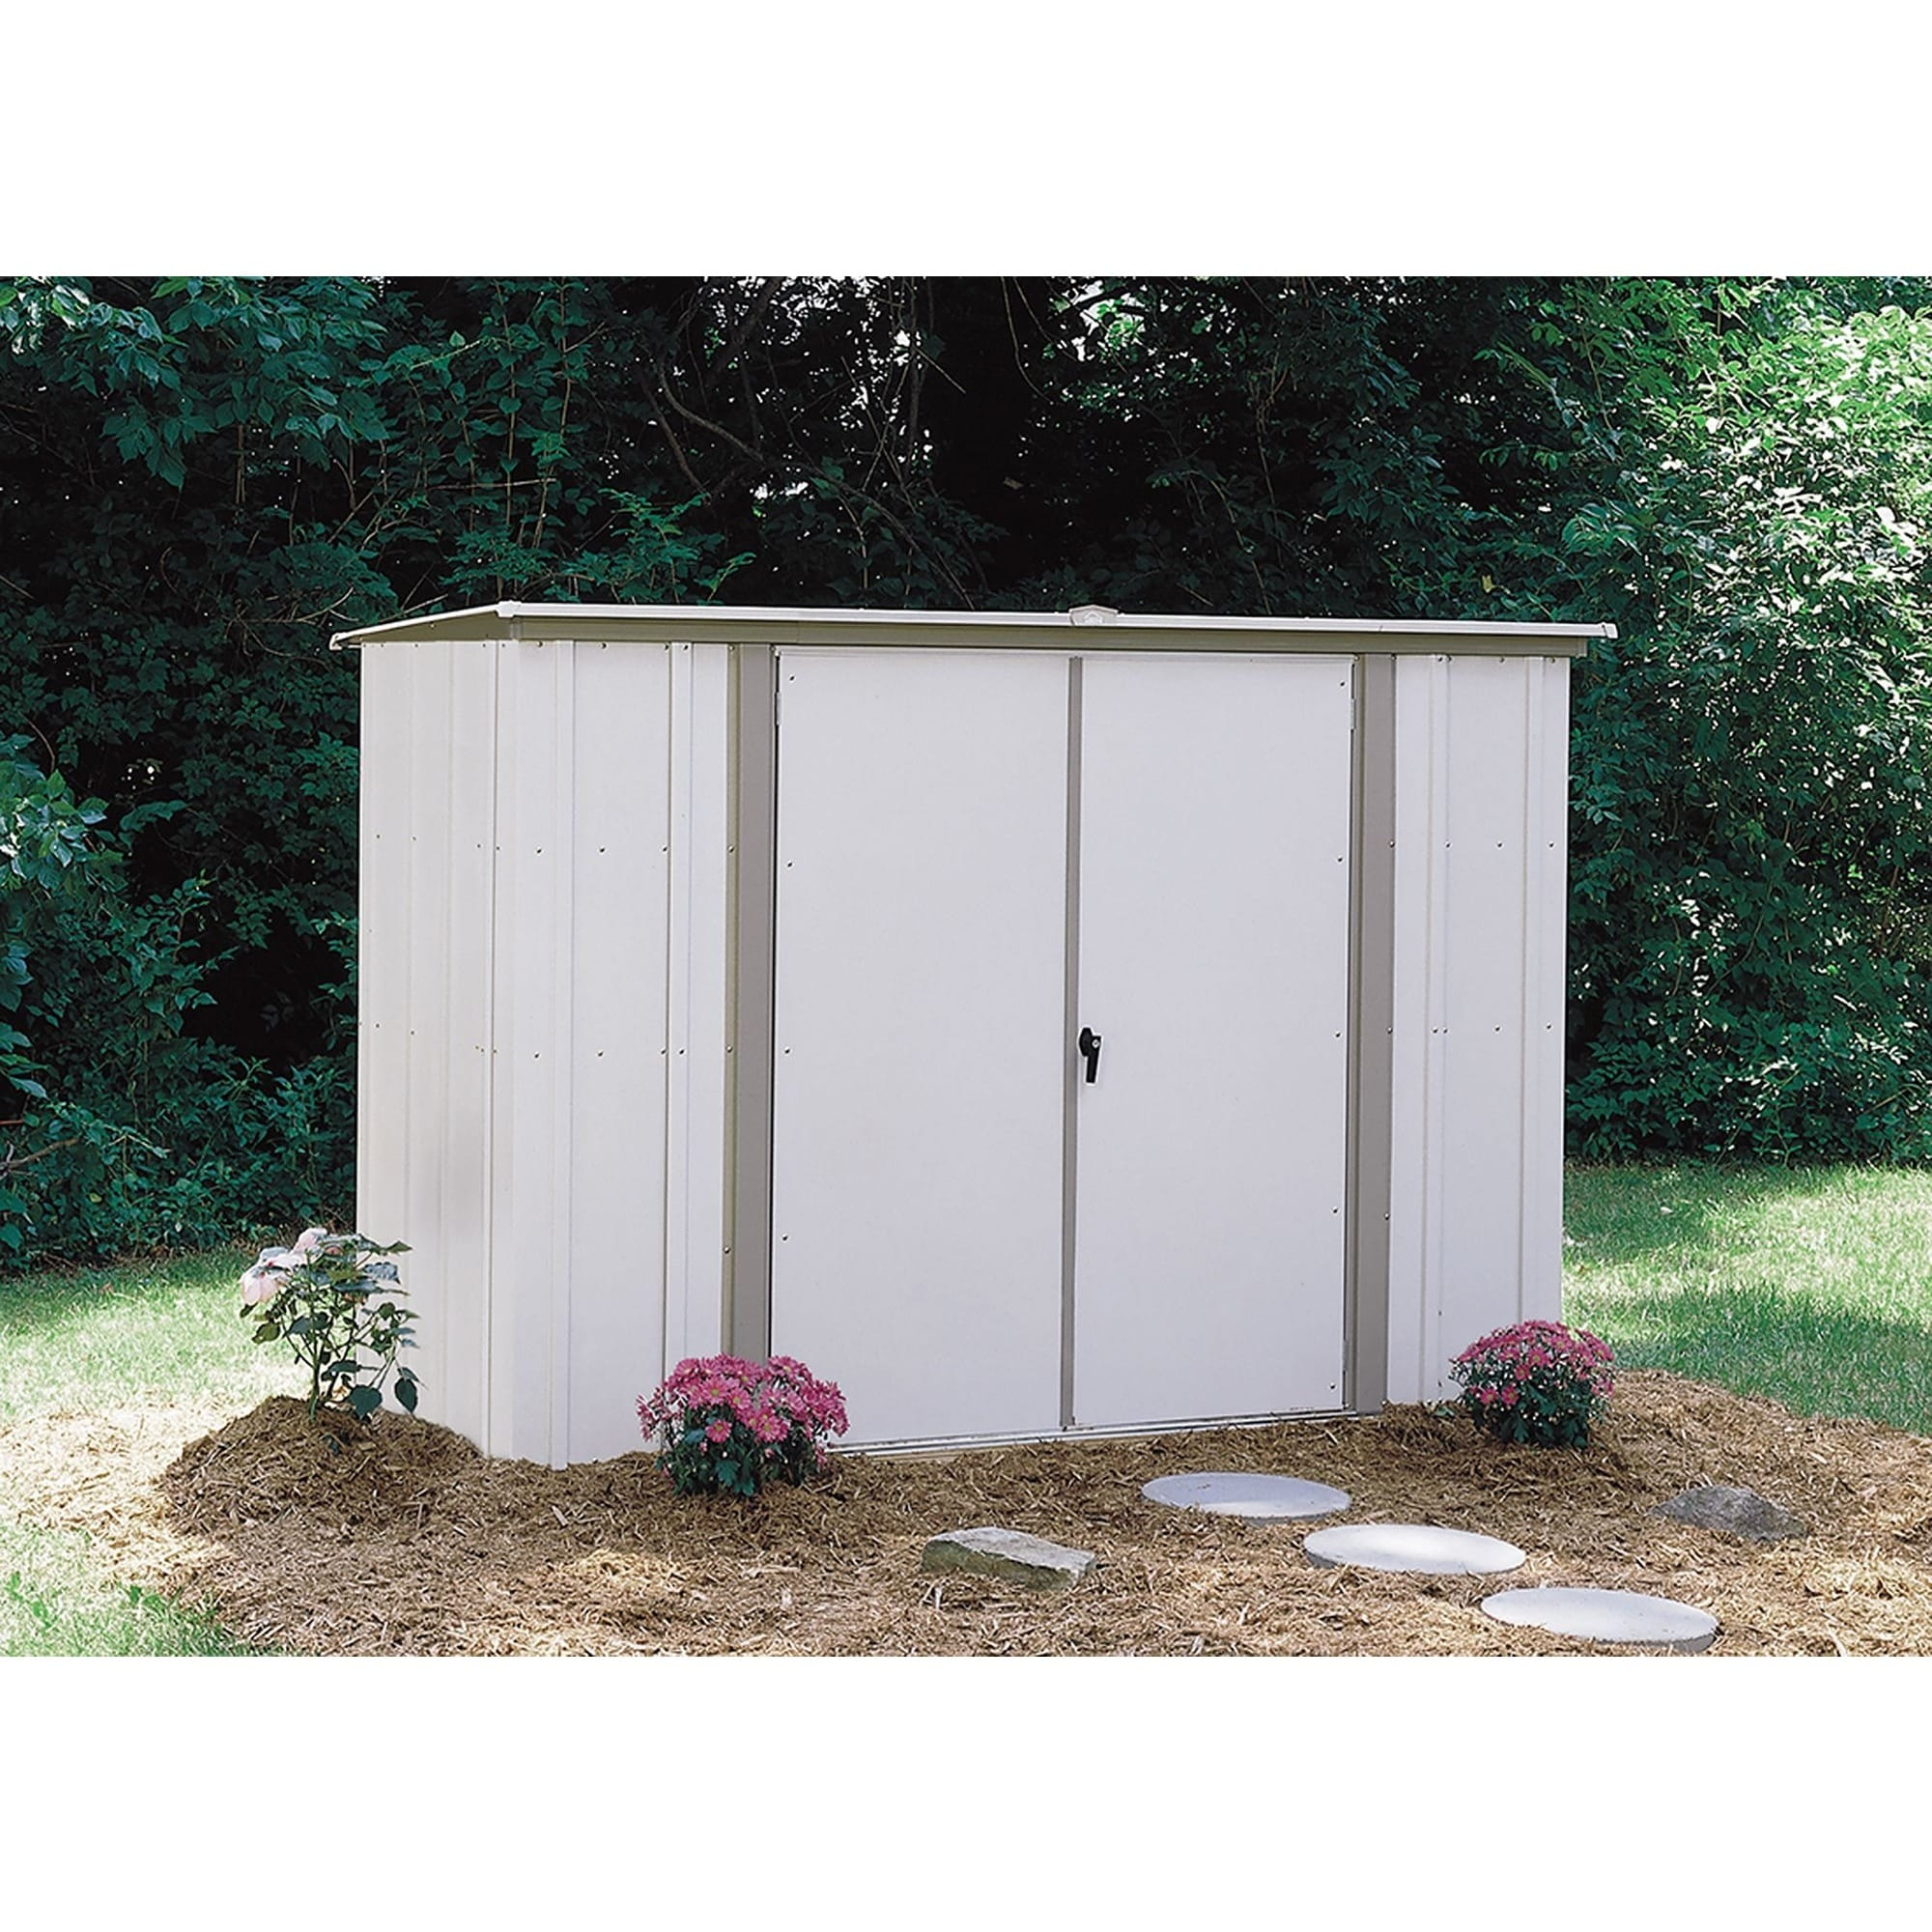 wooden office extra garden a buildings tunstall storage large sheds shed buy